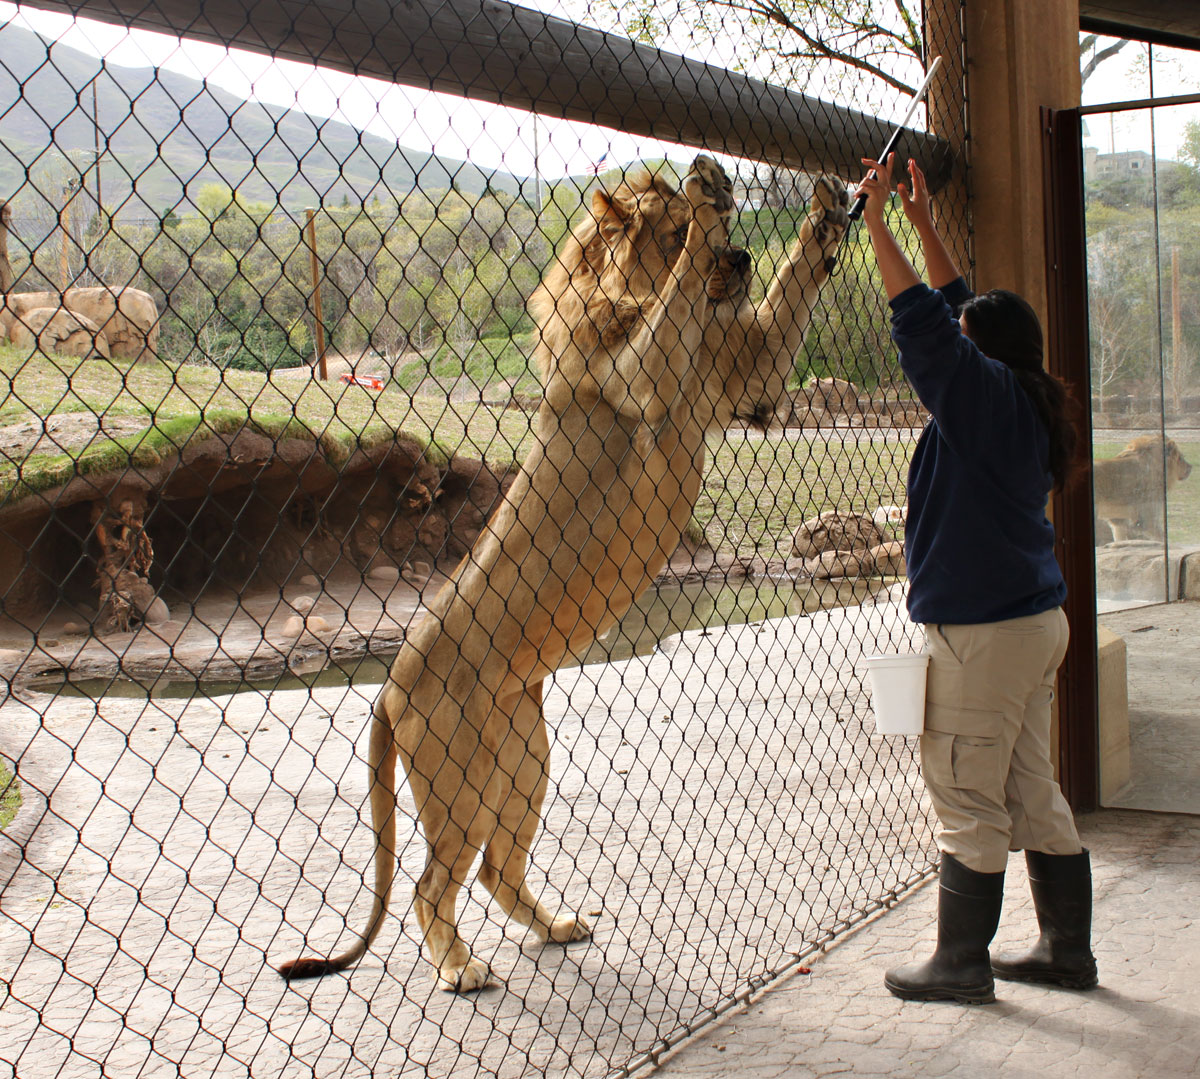 Trainer working with a lion at Hogle Zoo